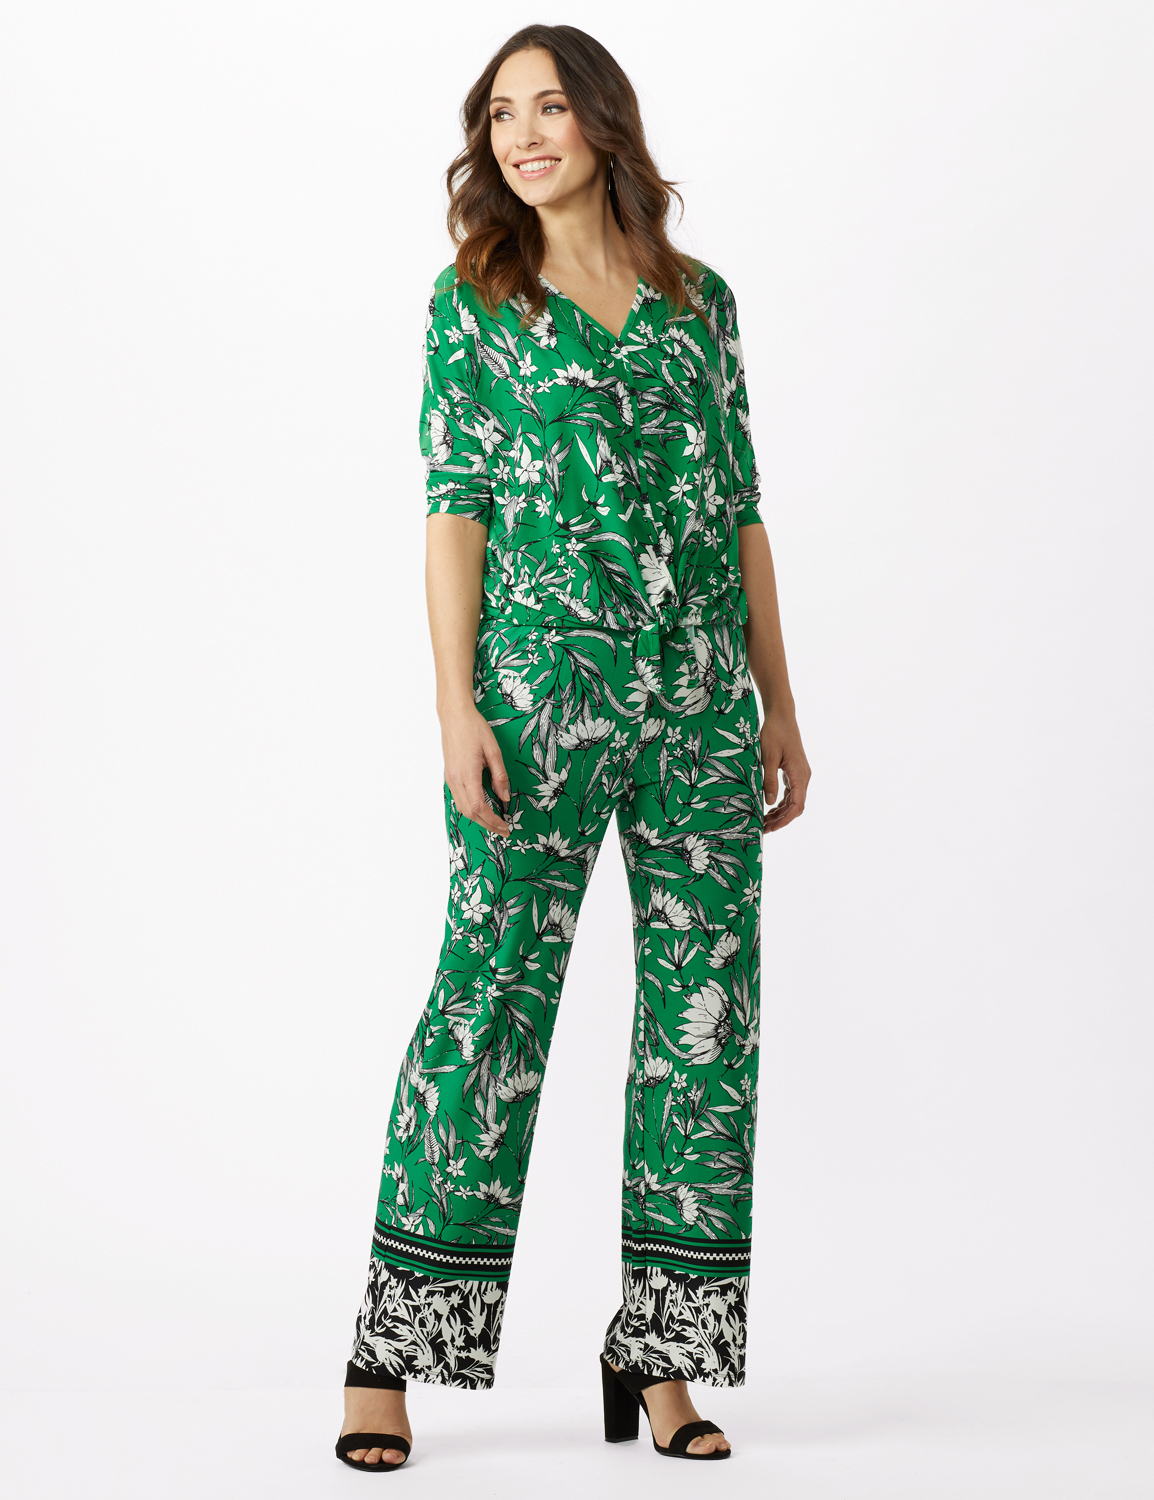 Knit Pull on Print Pant -Green/Black/Ivory - Front